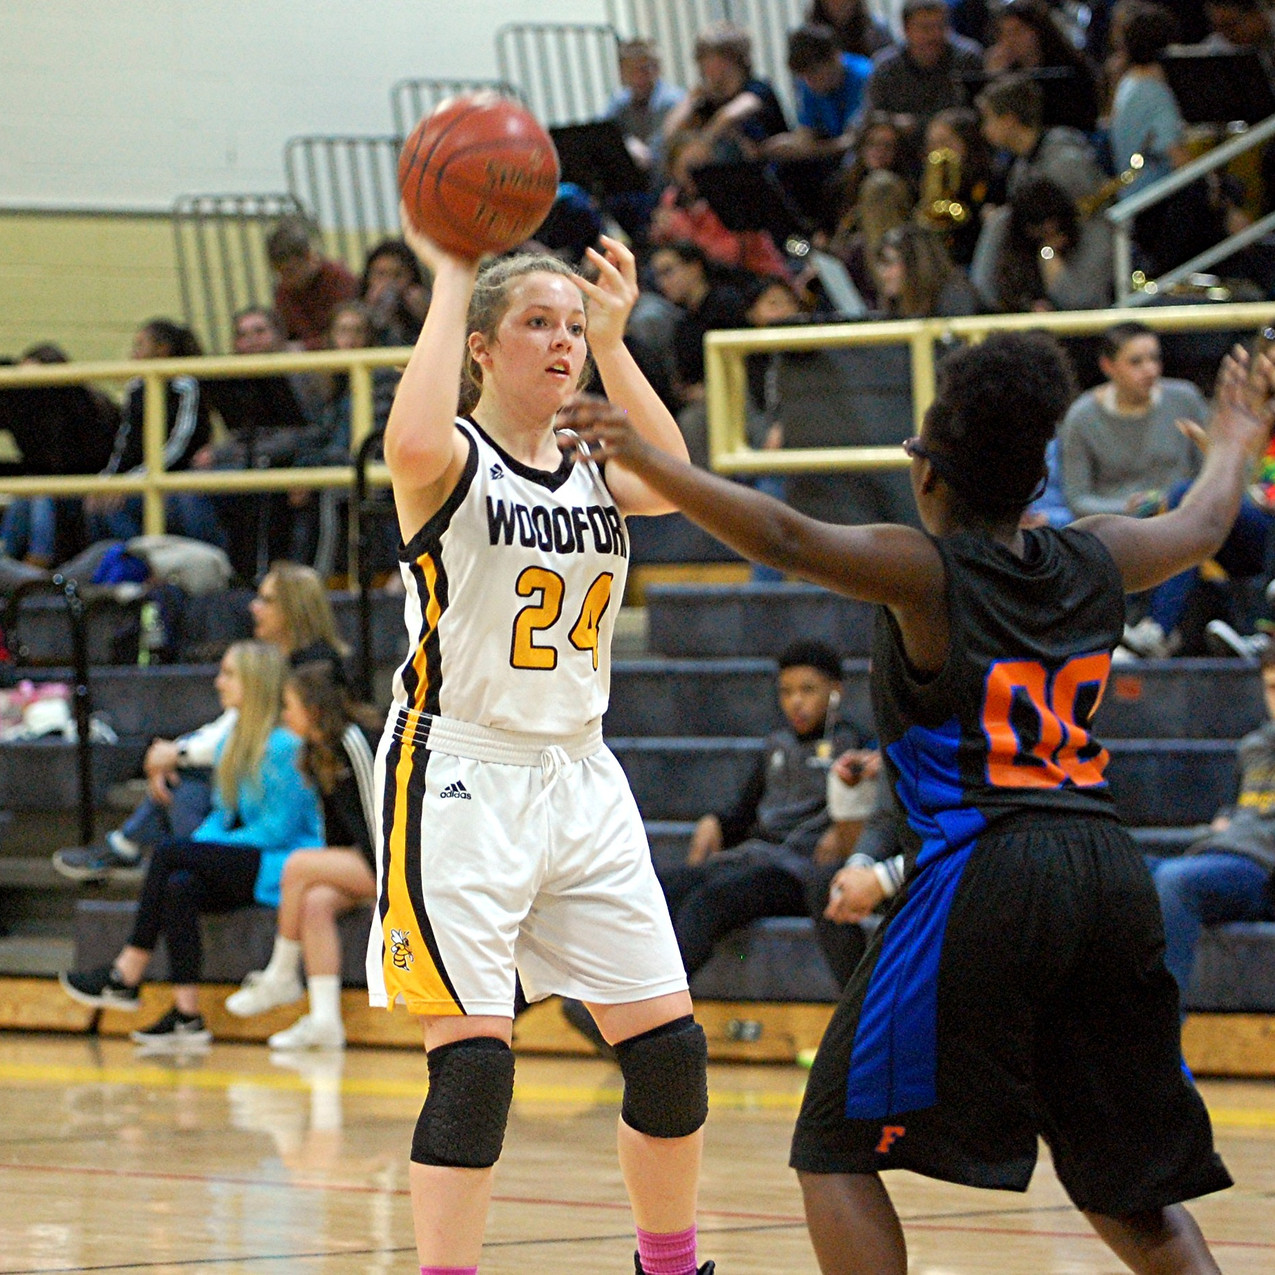 """ABBY MOFFETT looks for a teammate to pass the ball during the Woodford County High School girls' basketball game against Frankfort at home in The Hive on Saturday, Jan. 28. Moffett, who had 19 points, seven rebounds, five assists and four steals in the Lady Jackets' 60-40 win, """"…played her best game of her career,"""" according to Woodford head coach Jay Lucas. (Photo by Rick Capone)"""